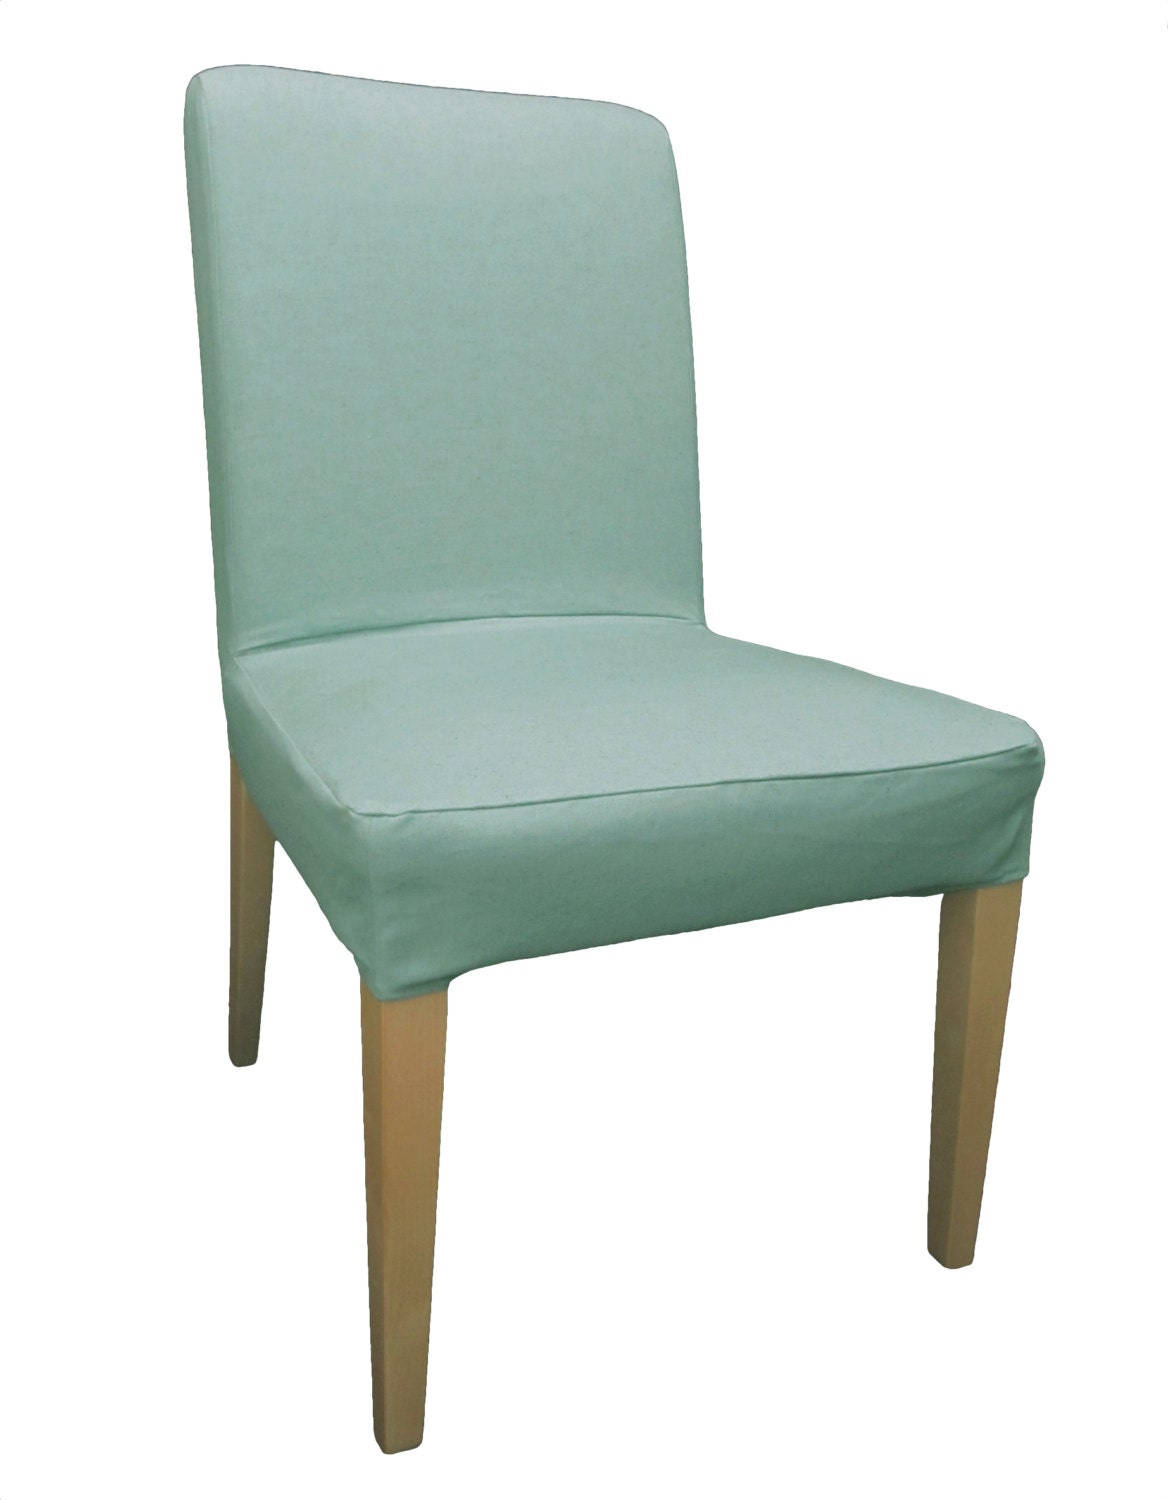 Slipcover for older ikea henriksdal dining chair by